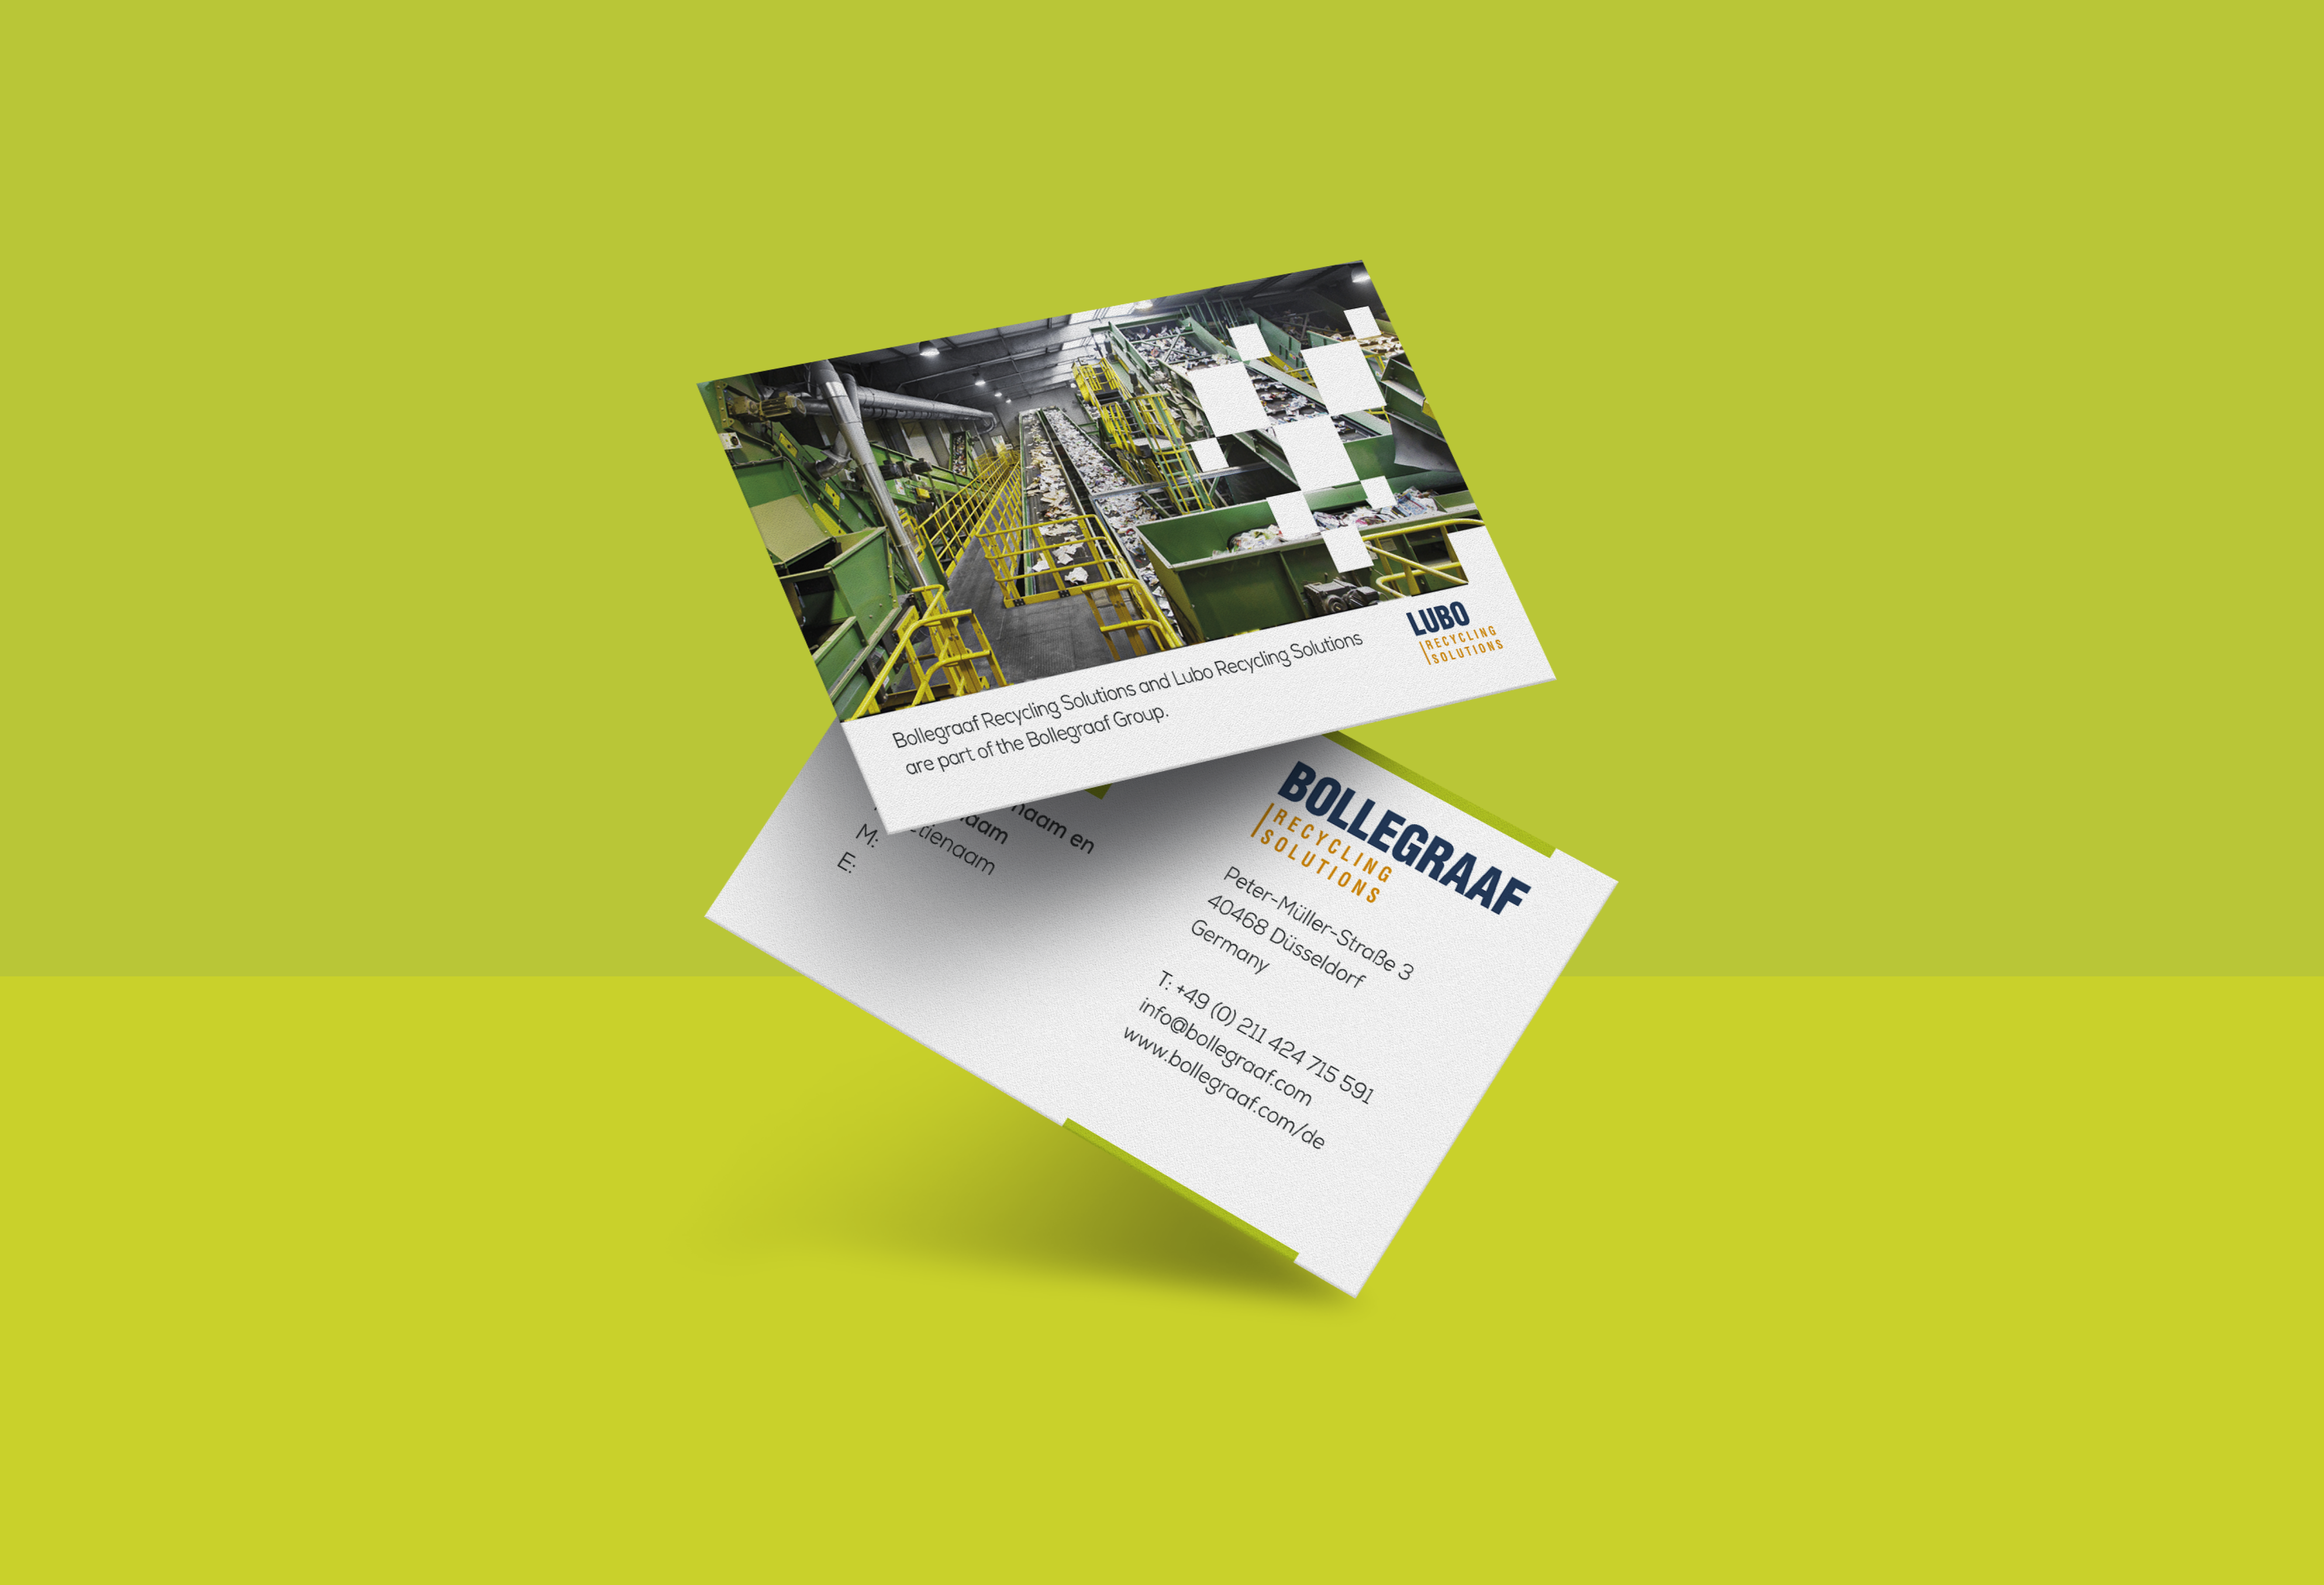 Bollegraaf Recycling Solutions